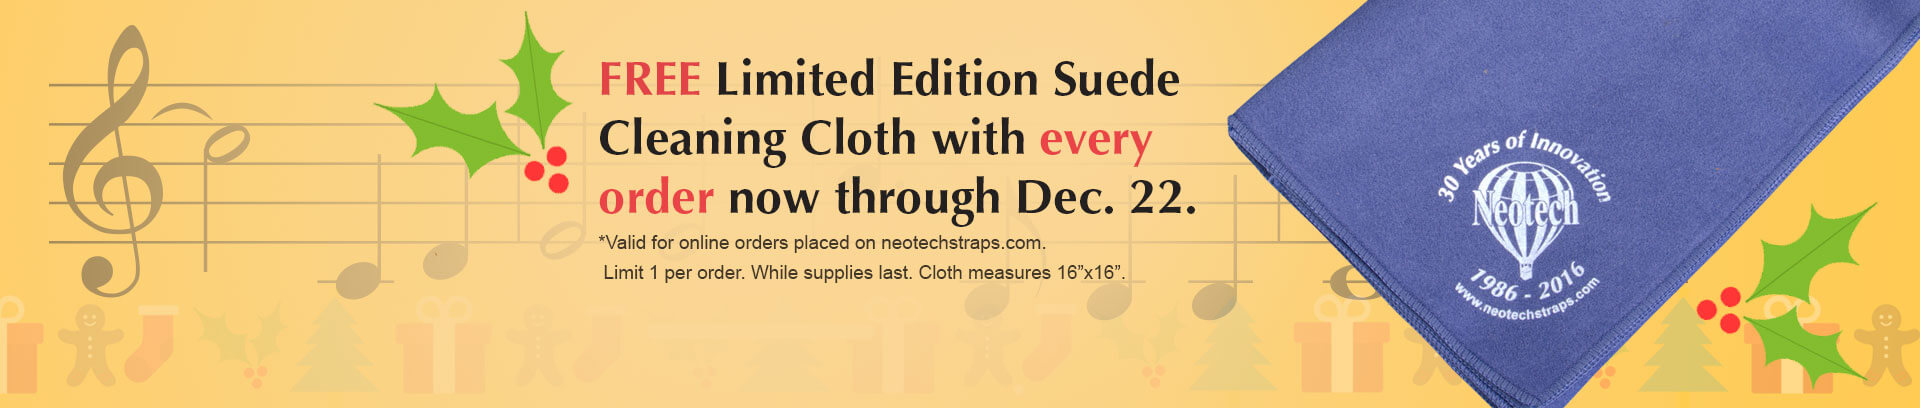 *Valid for online orders placed on neotechstraps.com. Limit 1 per order. While supplies last. Cloth measures 16in x 16in